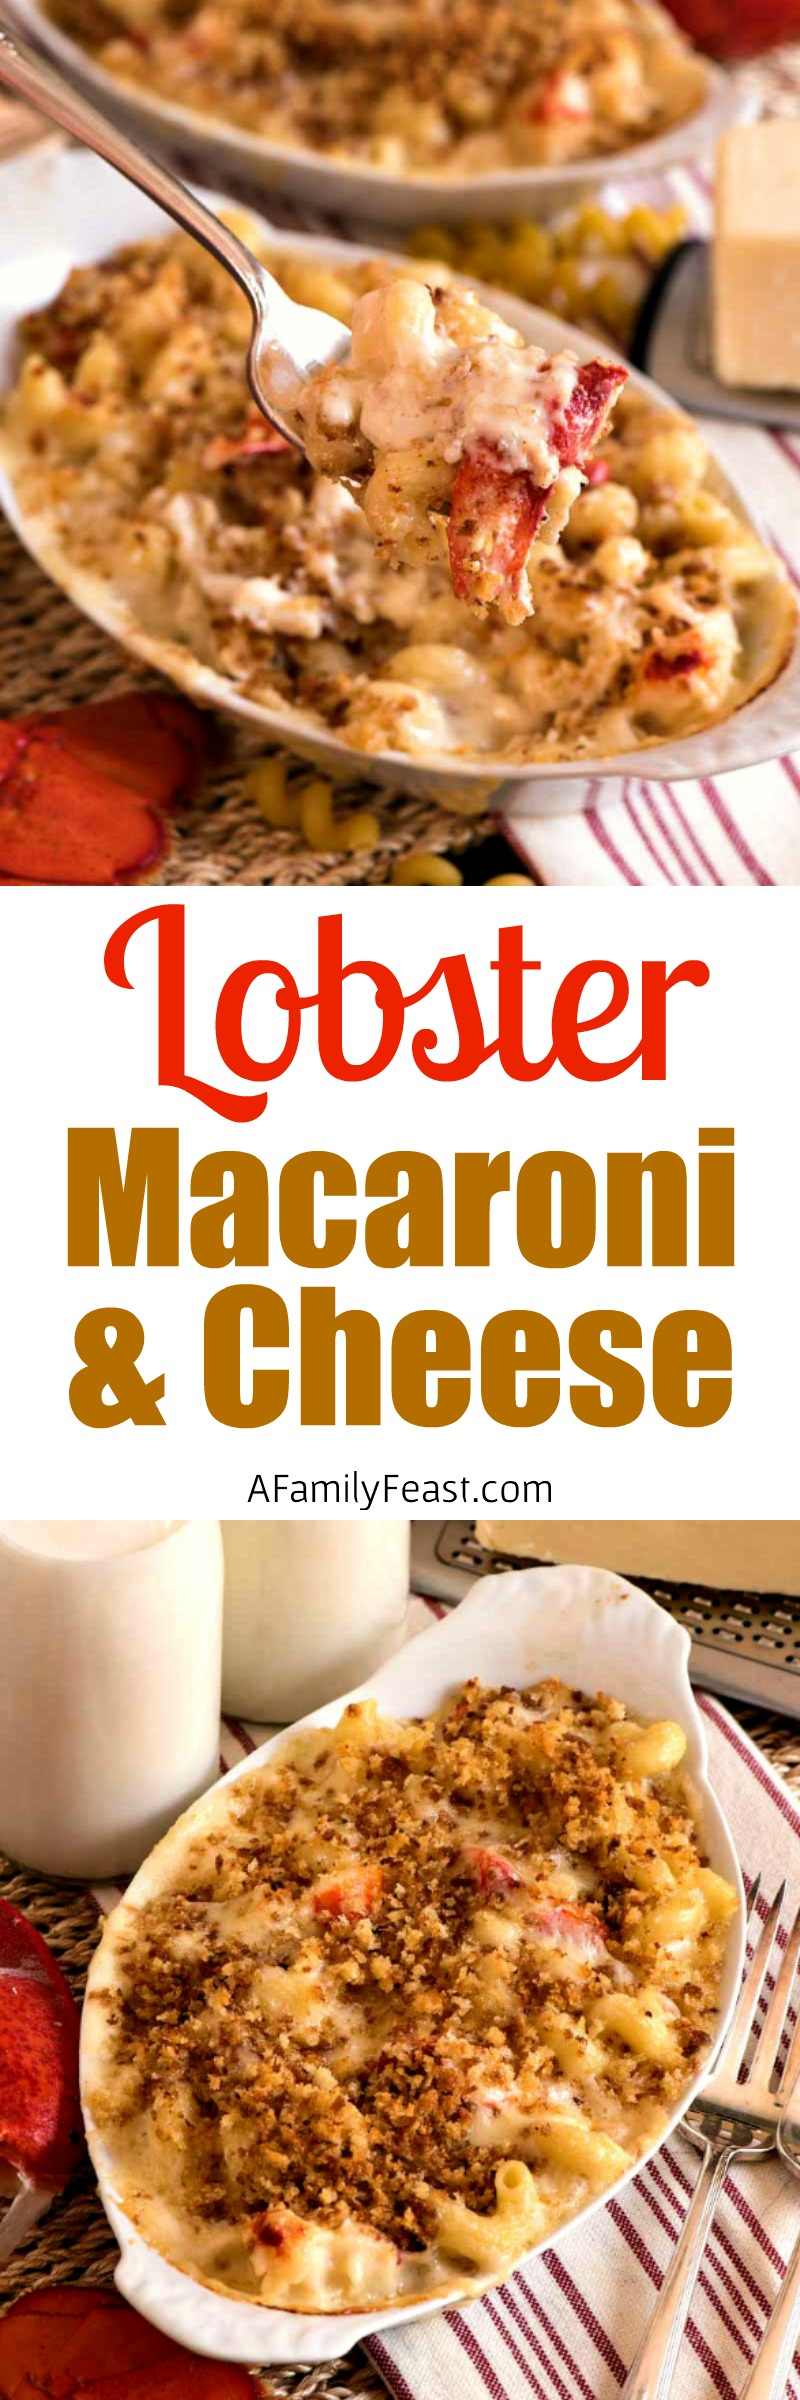 Lobster Mac and Cheese - Creamy macaroni and cheese loaded with chunks of lobster!